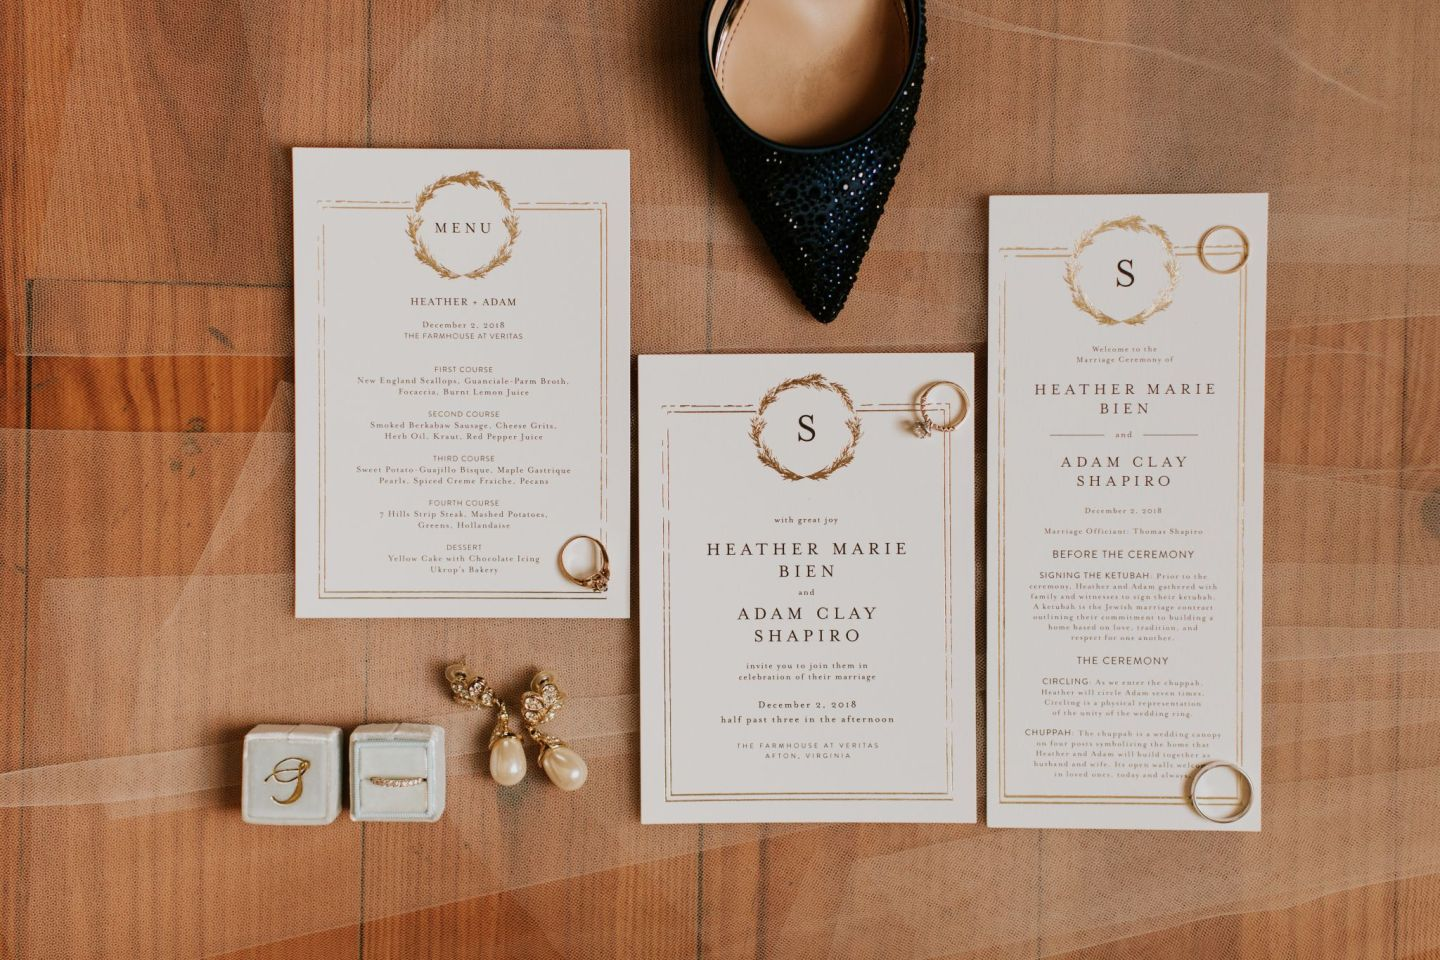 minted wedding - minted little wreath - minted wedding programs - minted wedding menus - minted wedding invitations